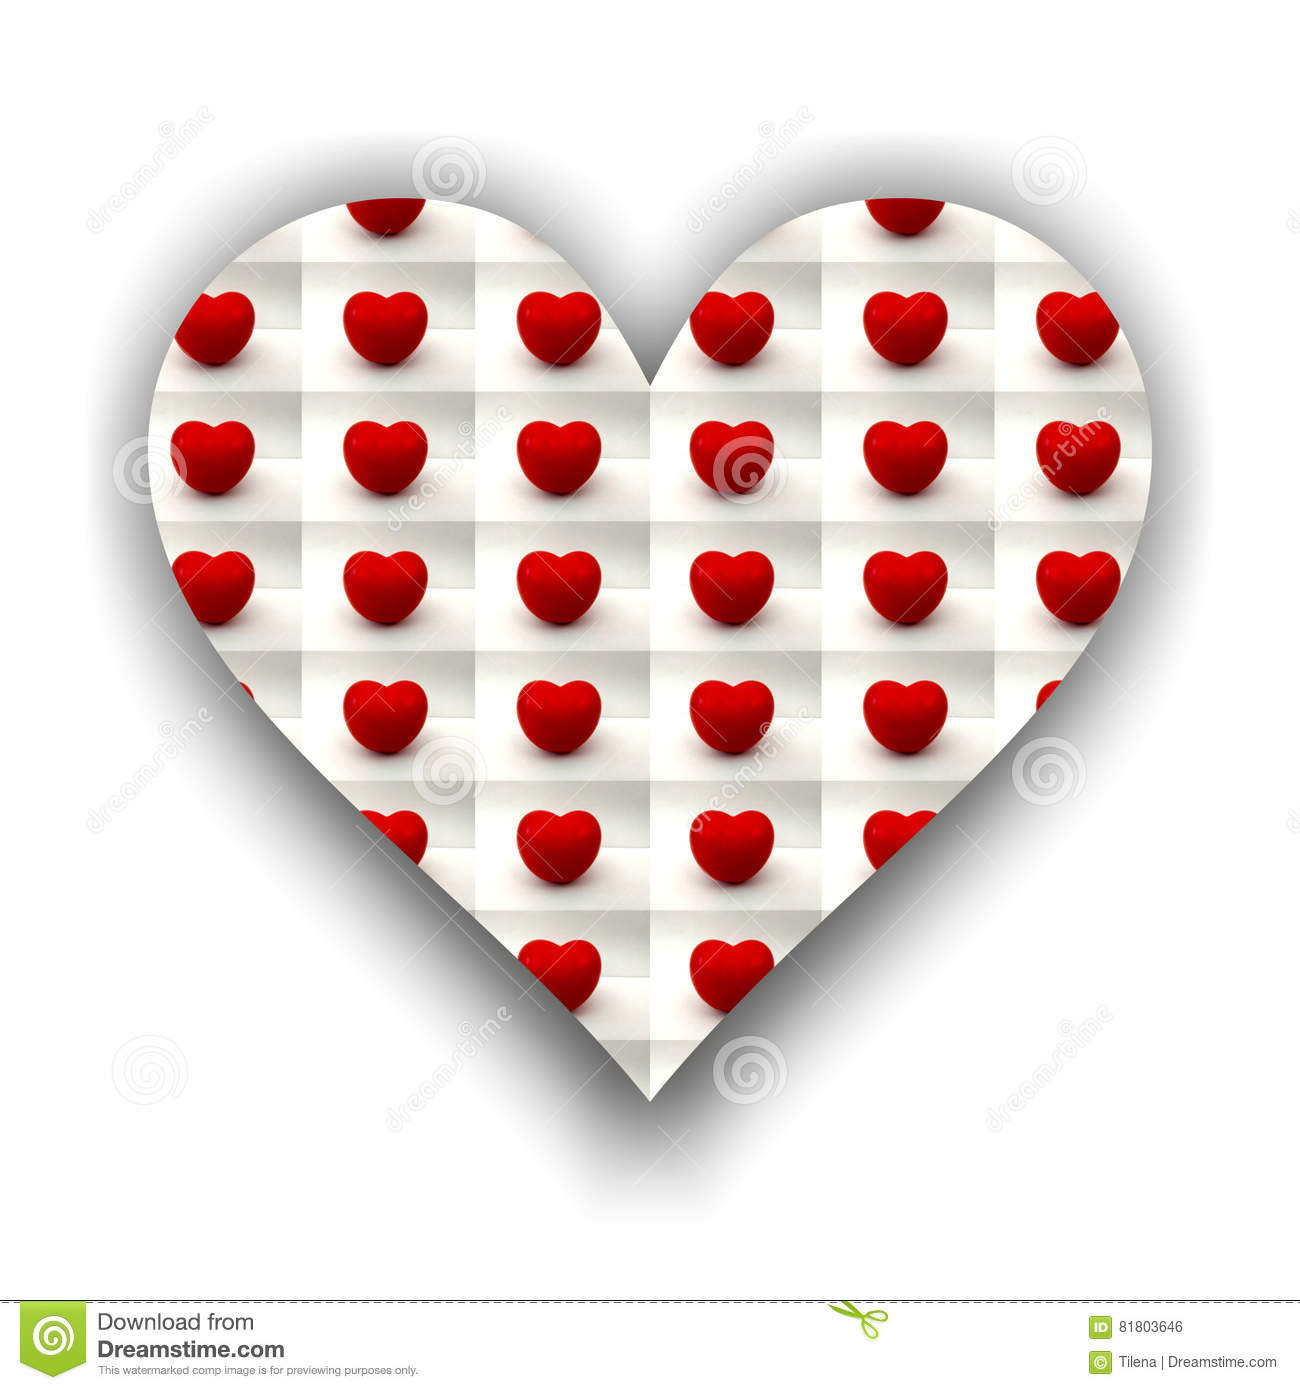 Heart Full Of Small Tomato Hearts Stock Illustration - Illustration ...